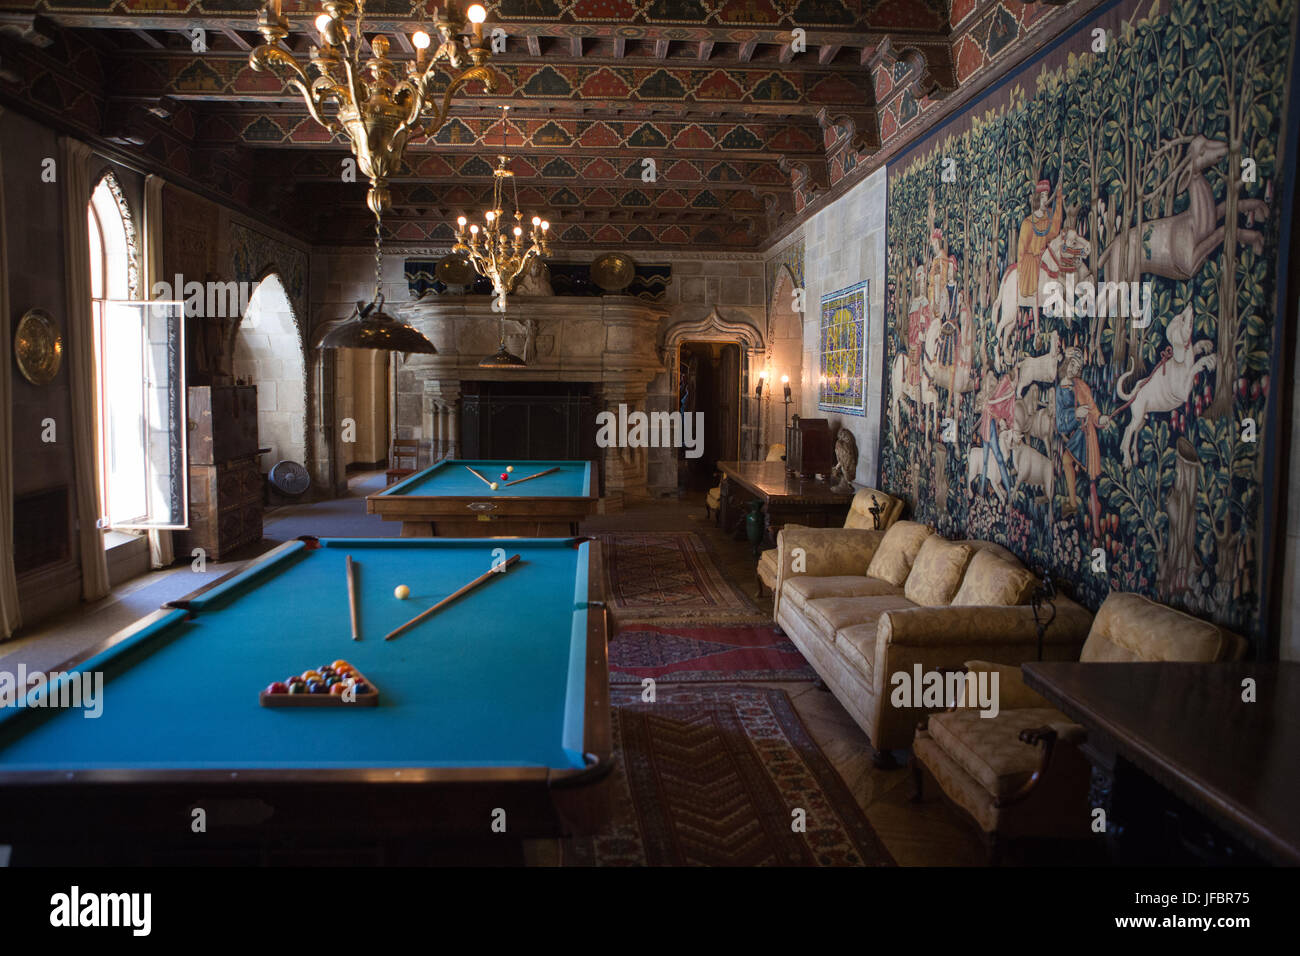 The Hearst Castle billiards room is decorated with furniture, tapestries, artwork and ornate light fixtures. - Stock Image